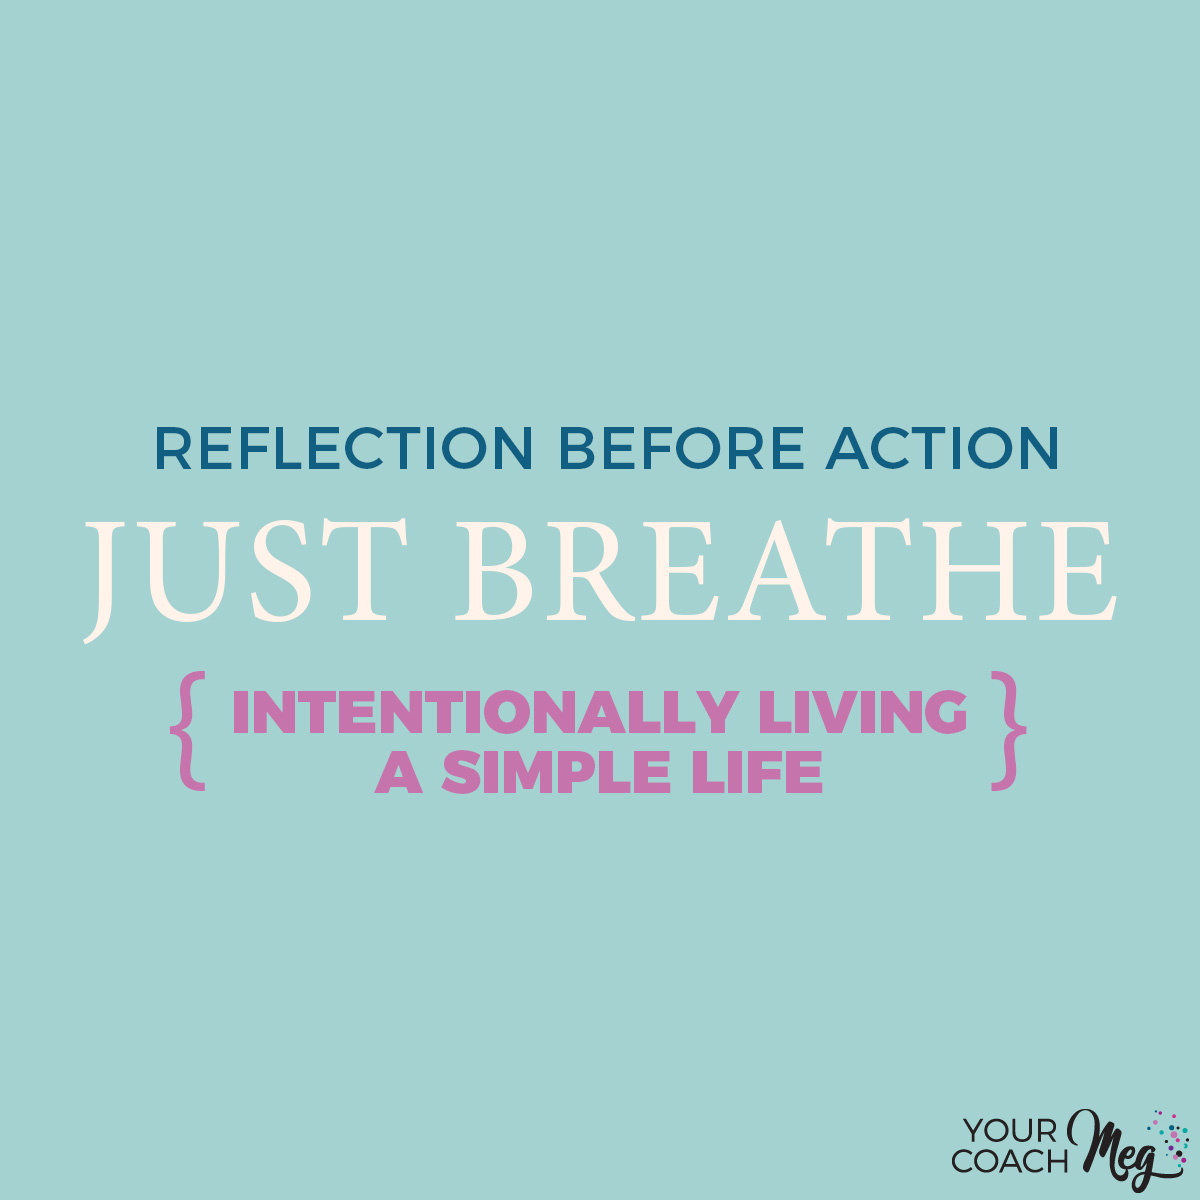 JUST BREATHE- REFLECTION BEFORE ACTION.jpg